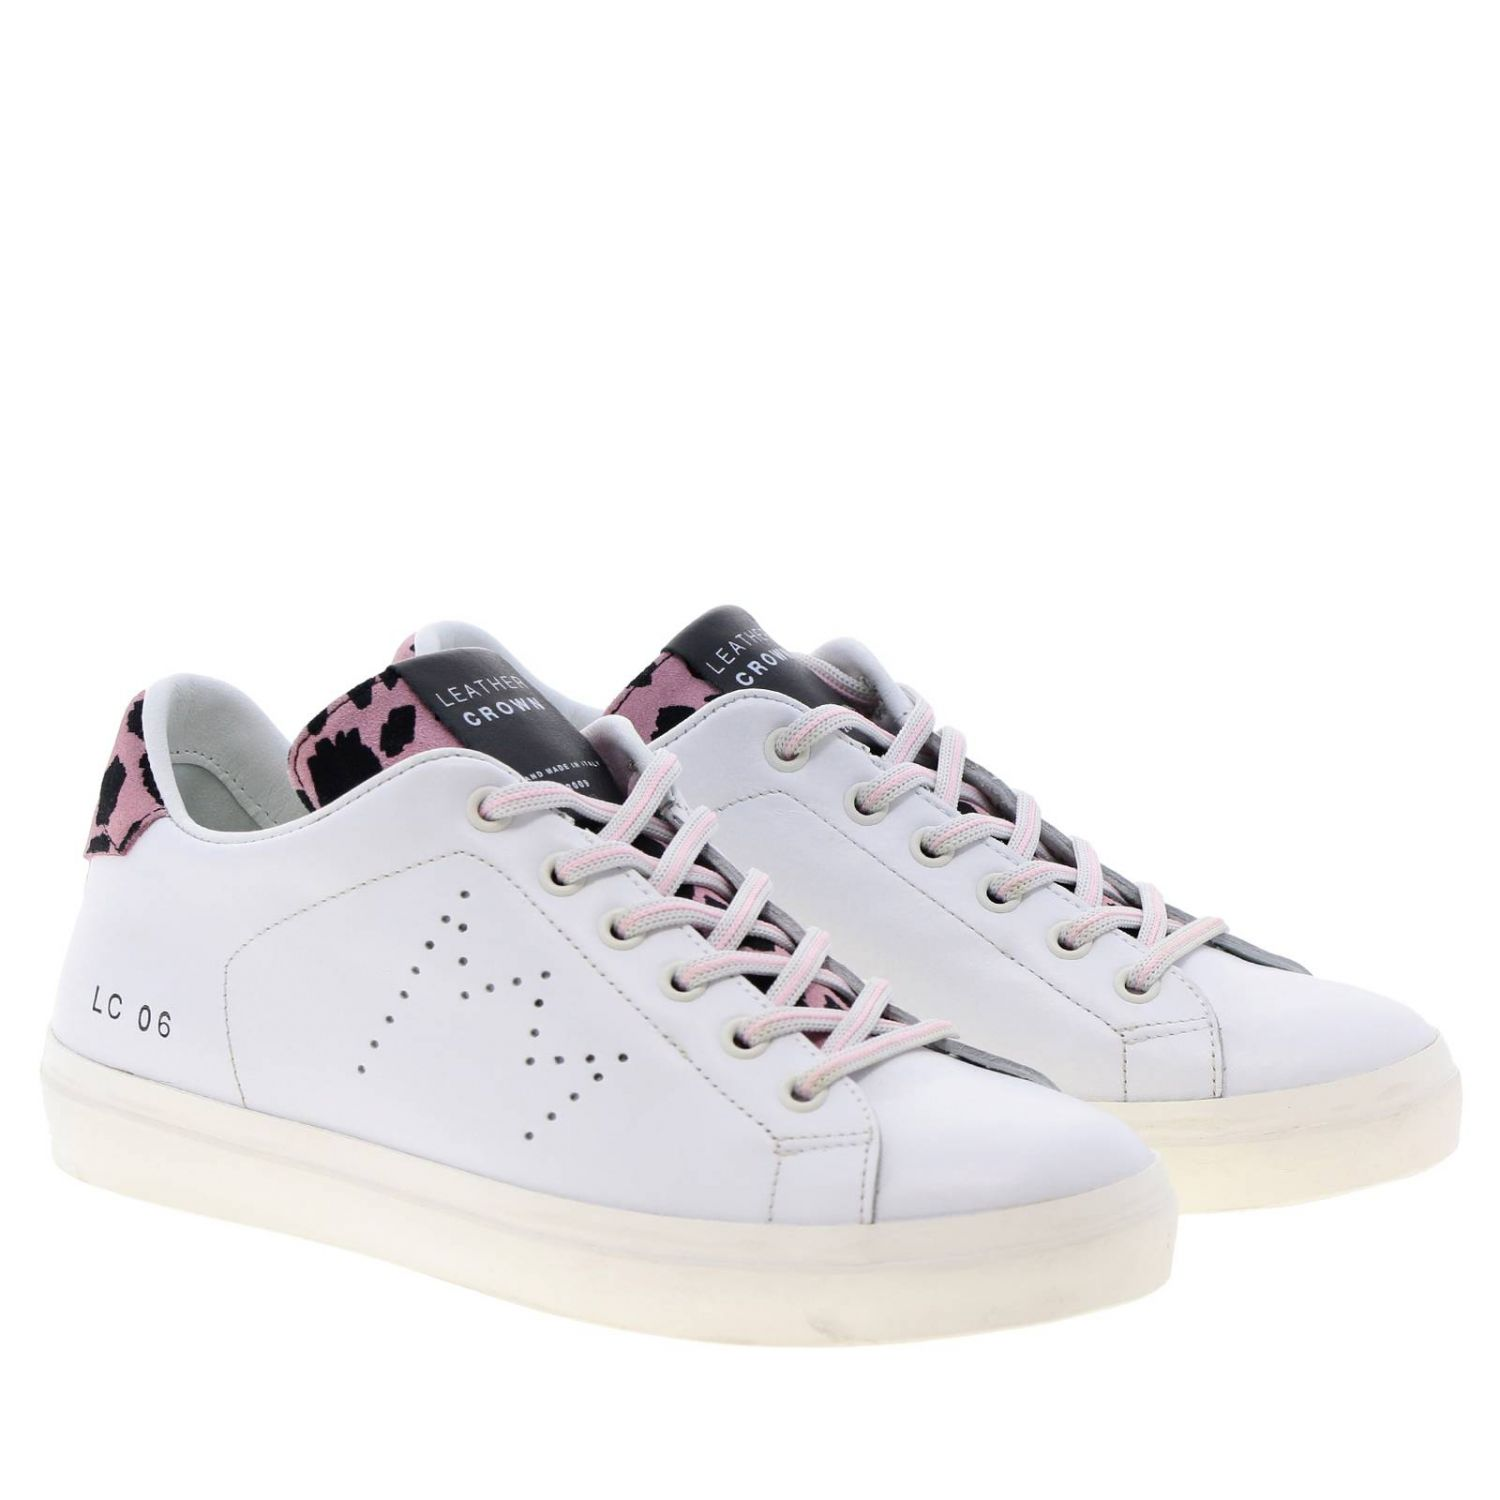 Shoes women Leather Crown pink 2